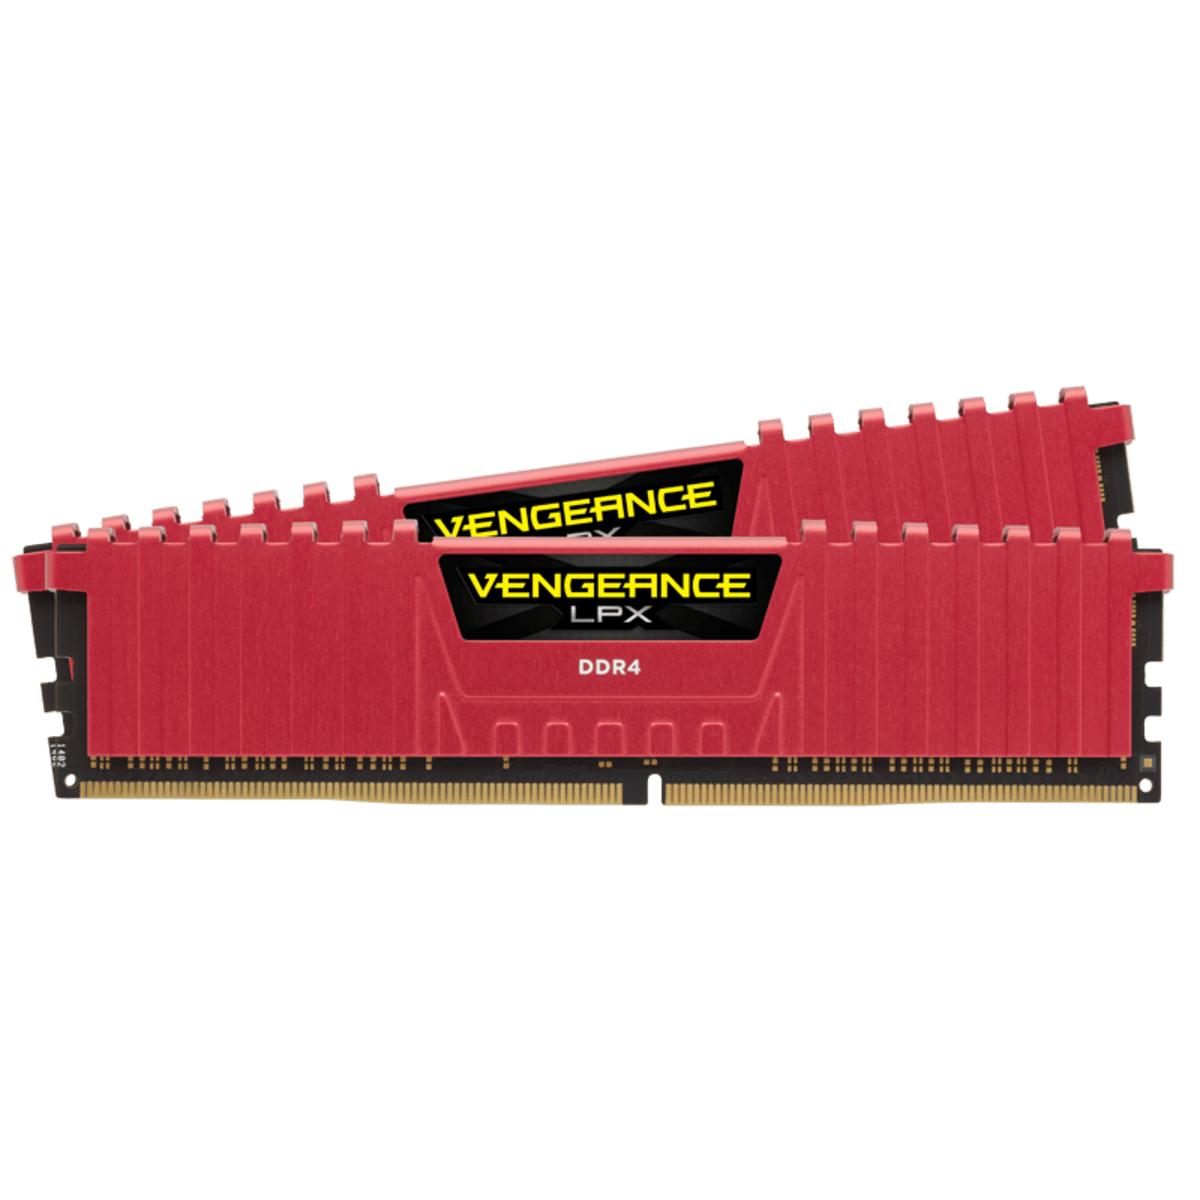 Corsair Vengeance LPX 8GB(2x4GB) 4000MHz - Red